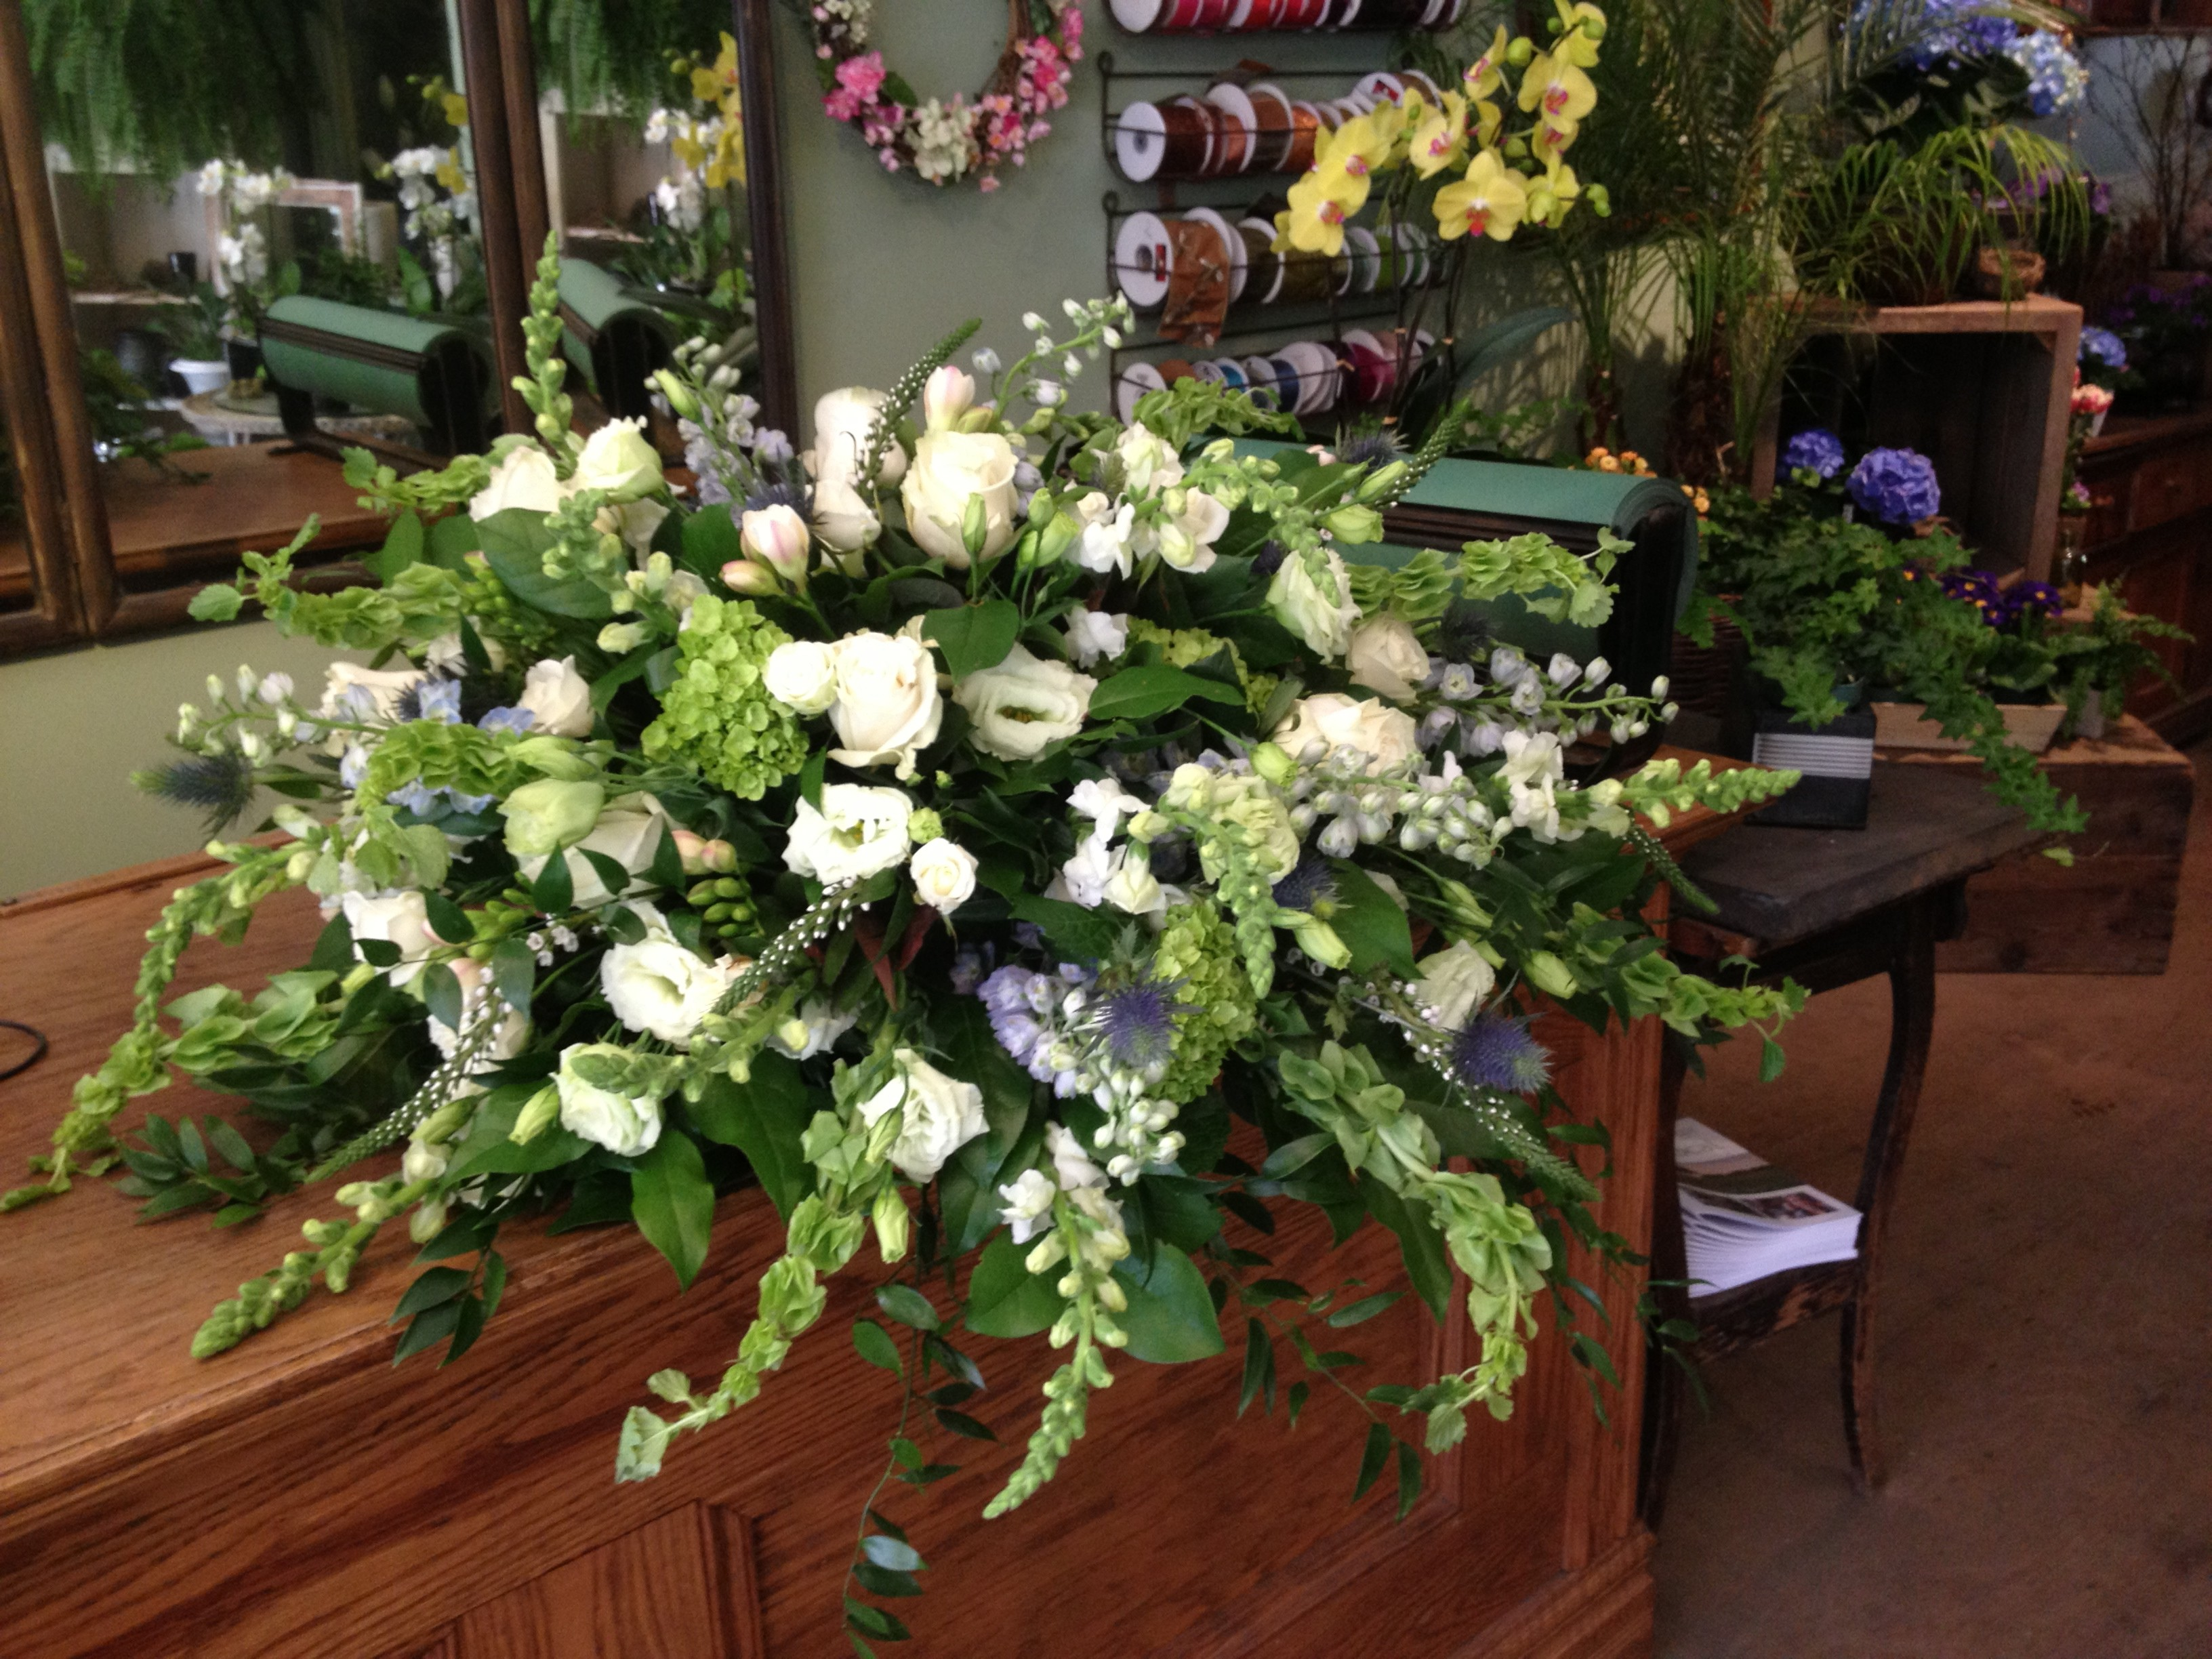 Sympathy east of eliza we believe funeral flowers should be beautiful not harsh or funereal izmirmasajfo